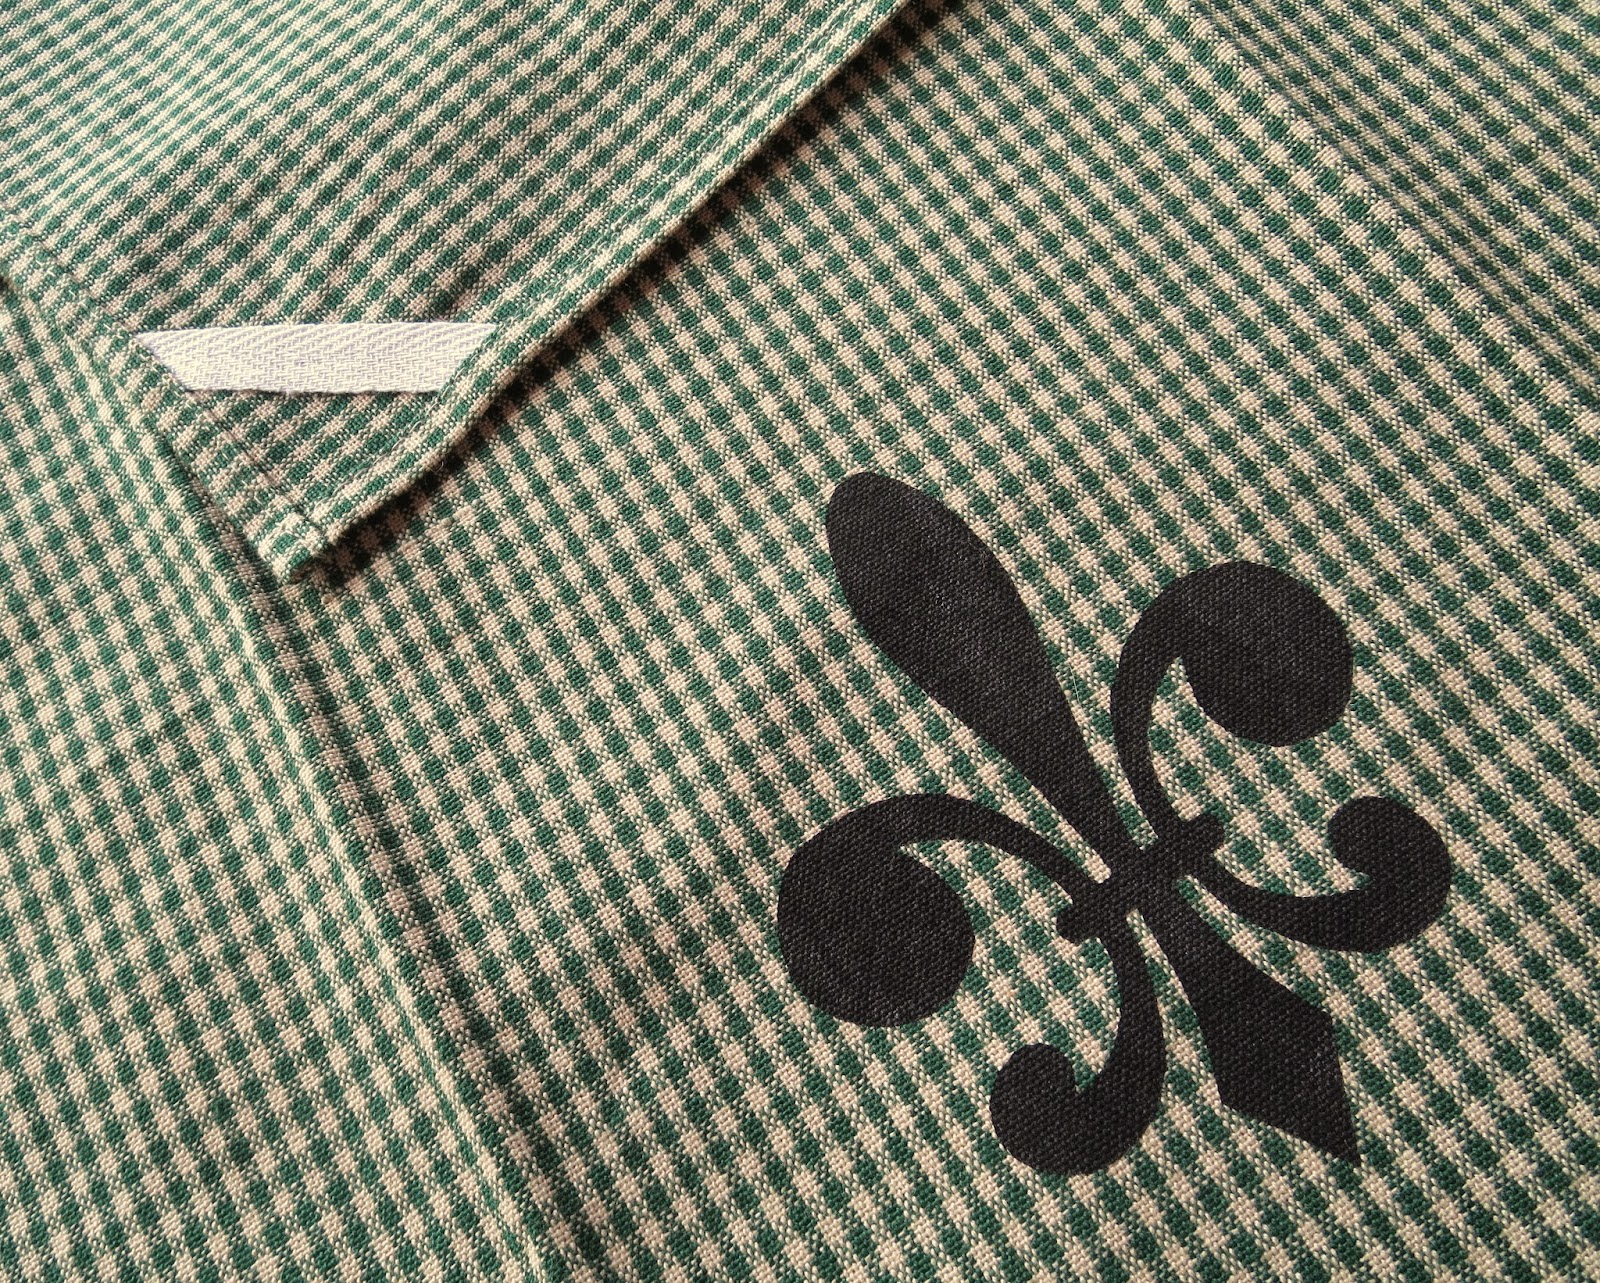 https://www.etsy.com/listing/229208251/fleur-de-lis-vintage-style-hunter-green?ref=shop_home_active_8